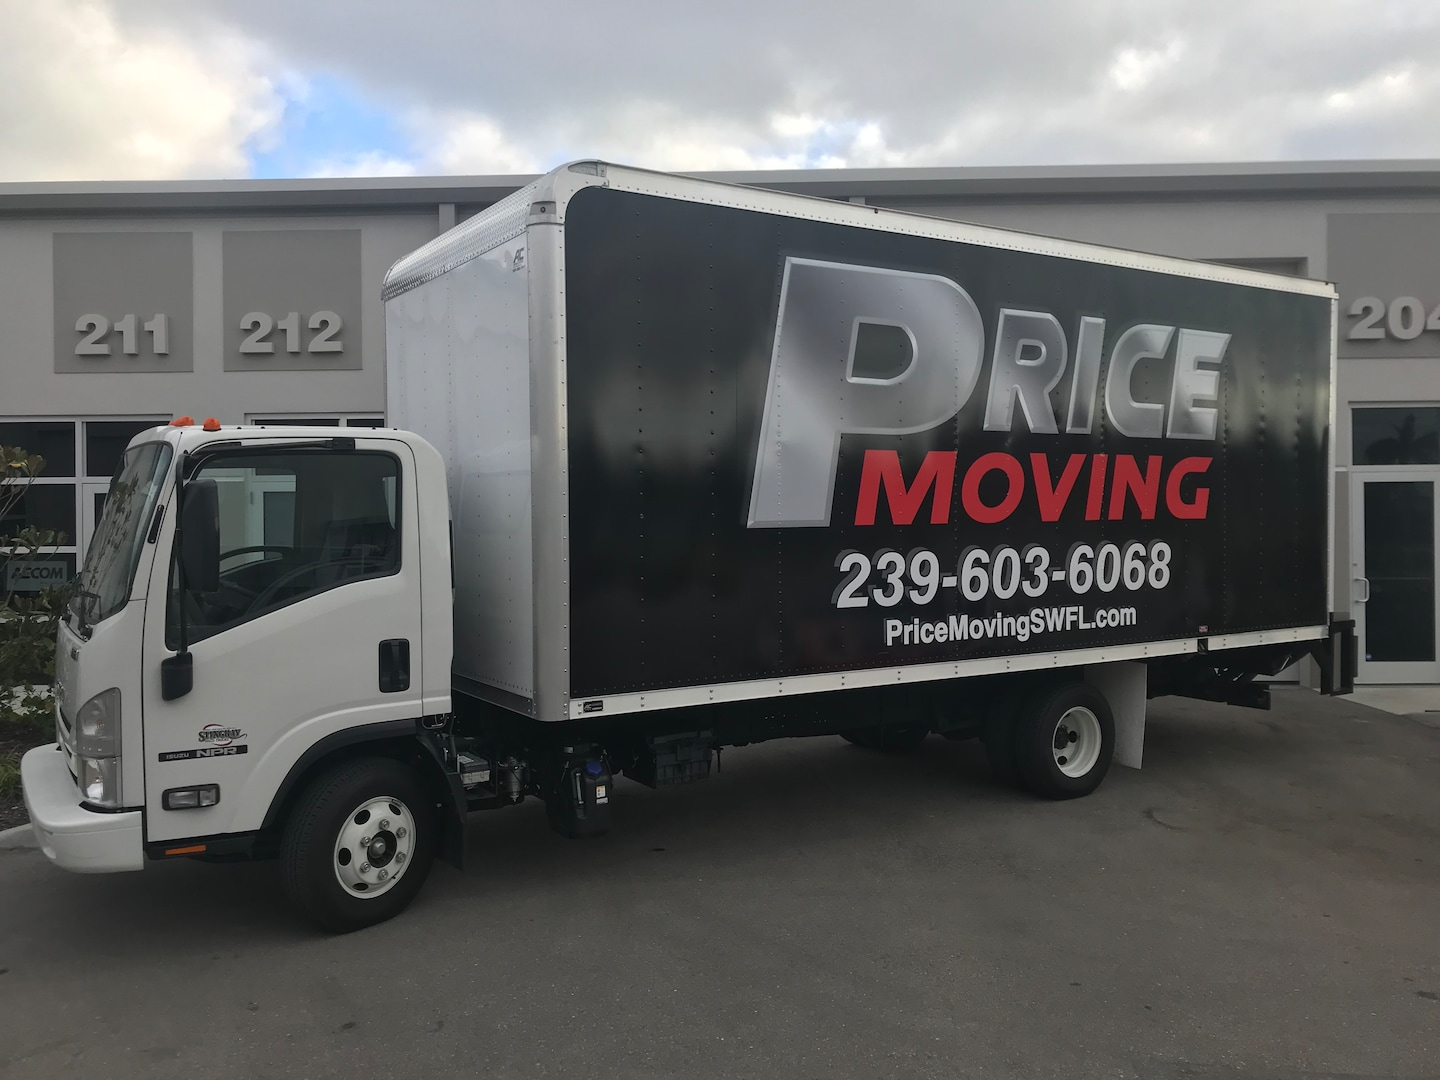 Price Moving